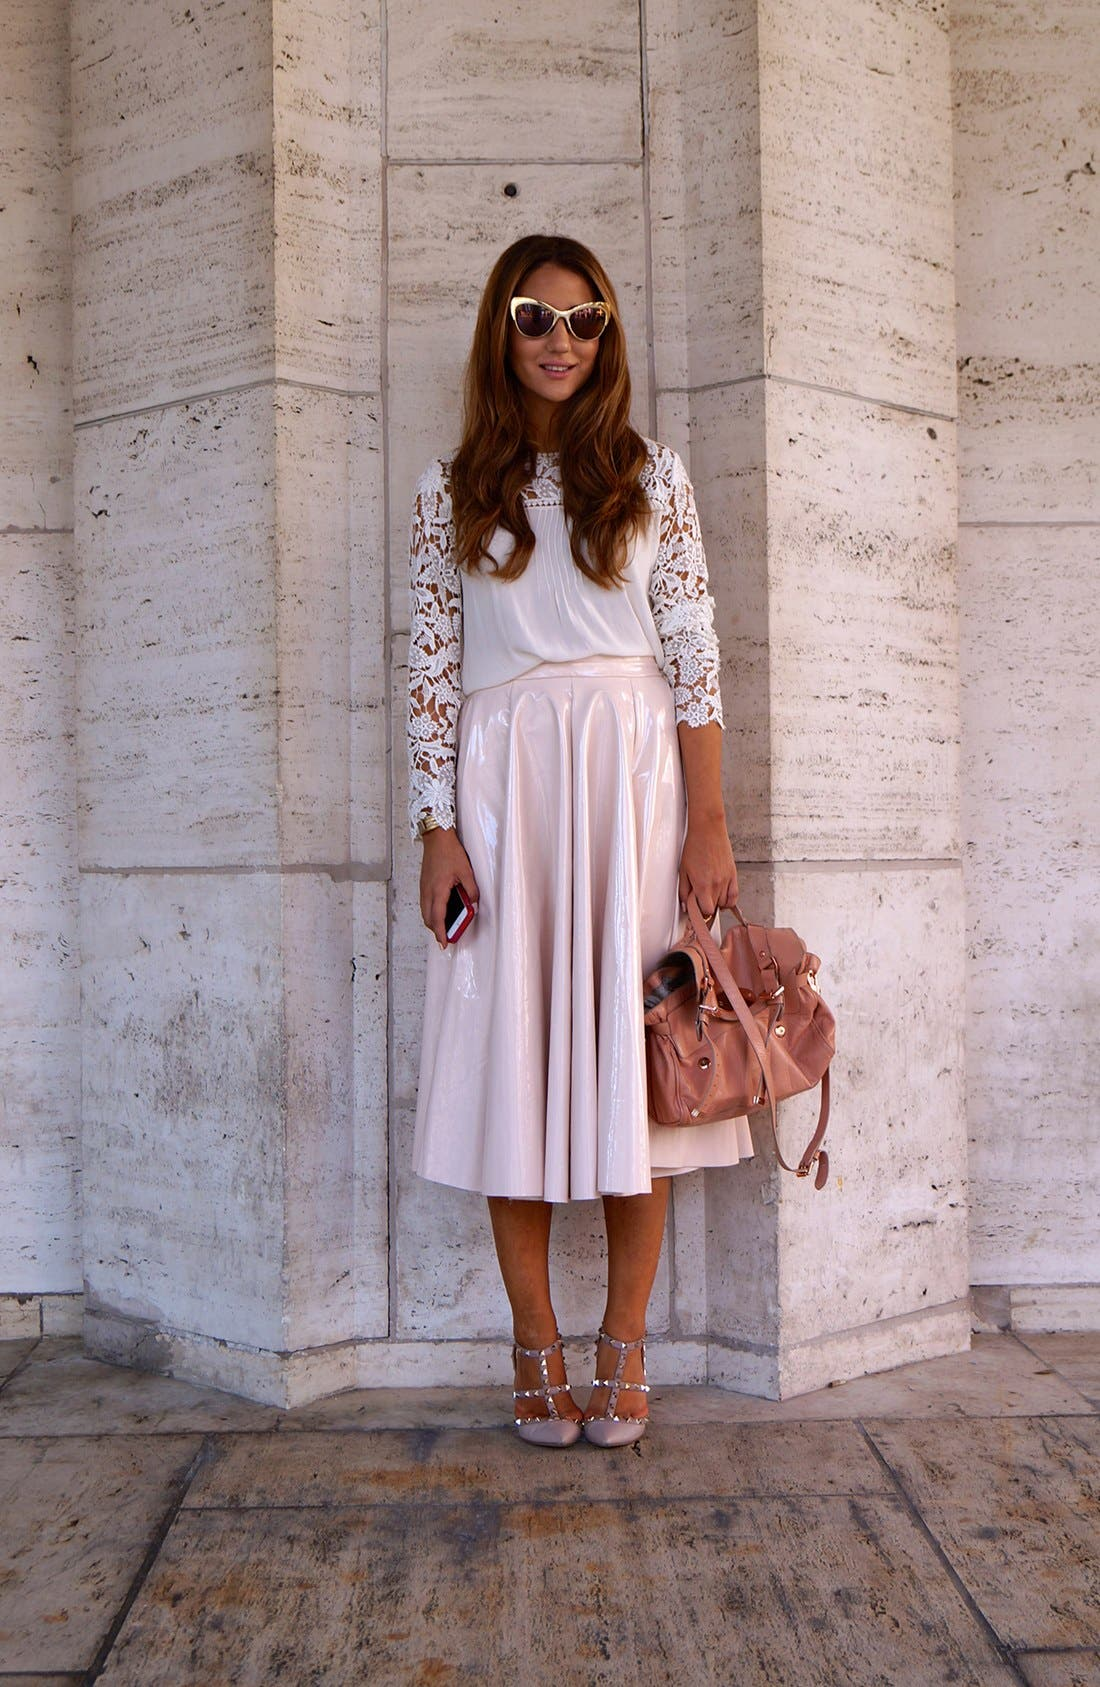 Alternate Image 1 Selected - Anytime Lace Street Style Look